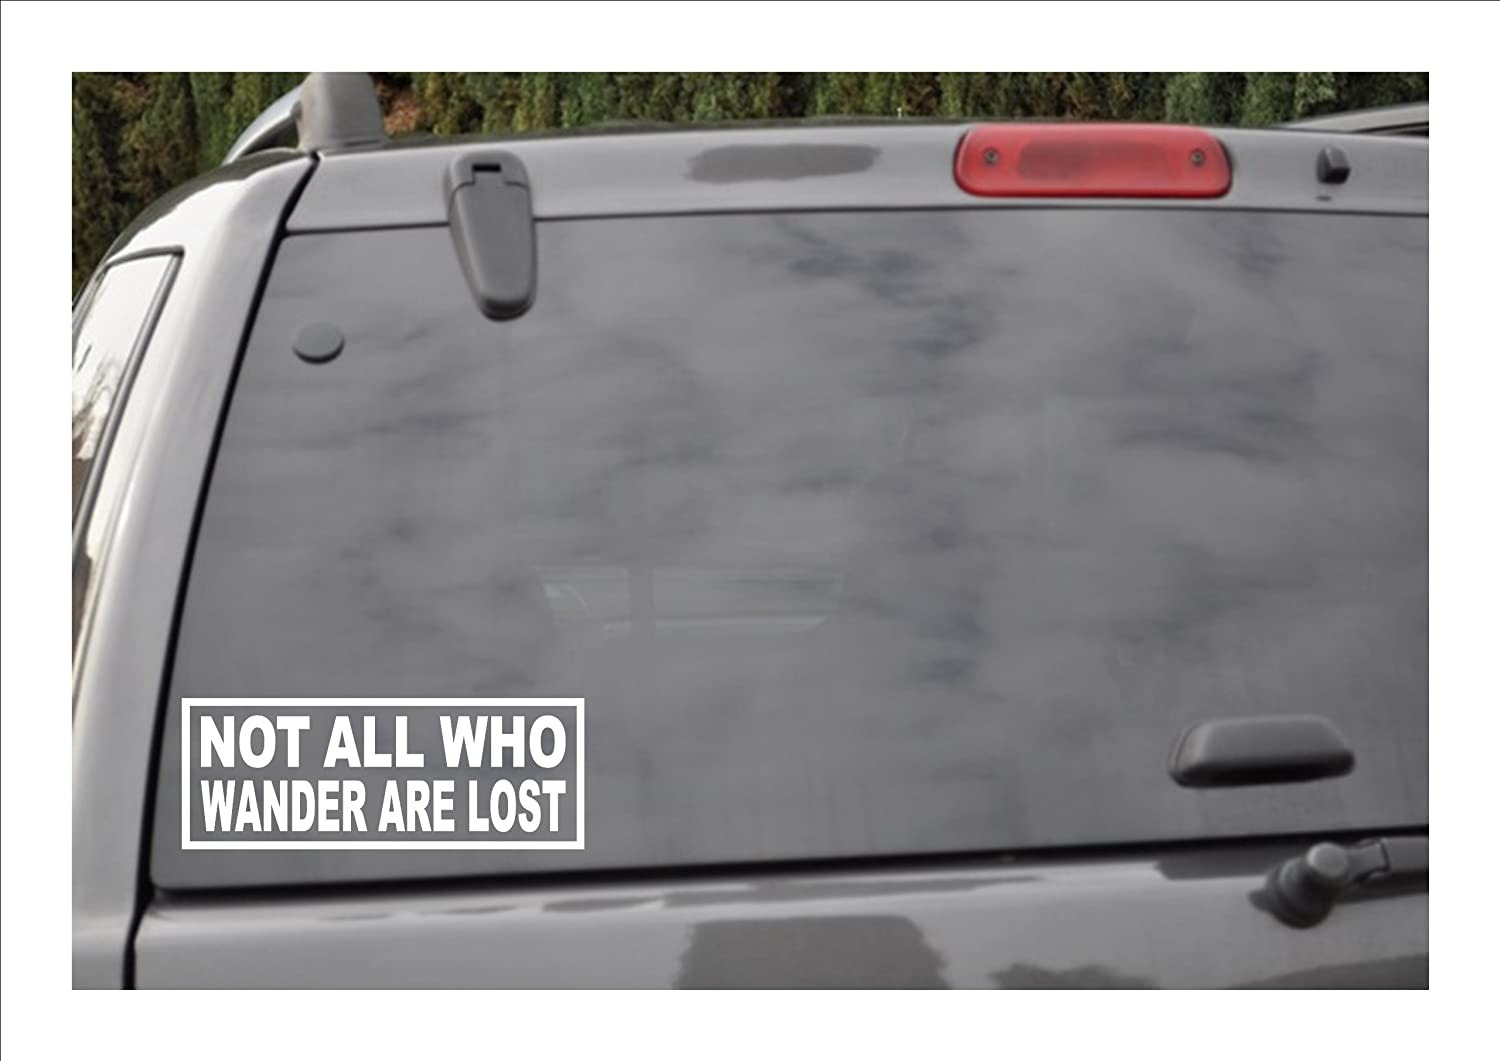 Amazoncom NOT ALL WHO WANDER ARE LOST Window Decal Automotive - Jeep hood decalsall that wander are not lost compass jeep hood decal sticker